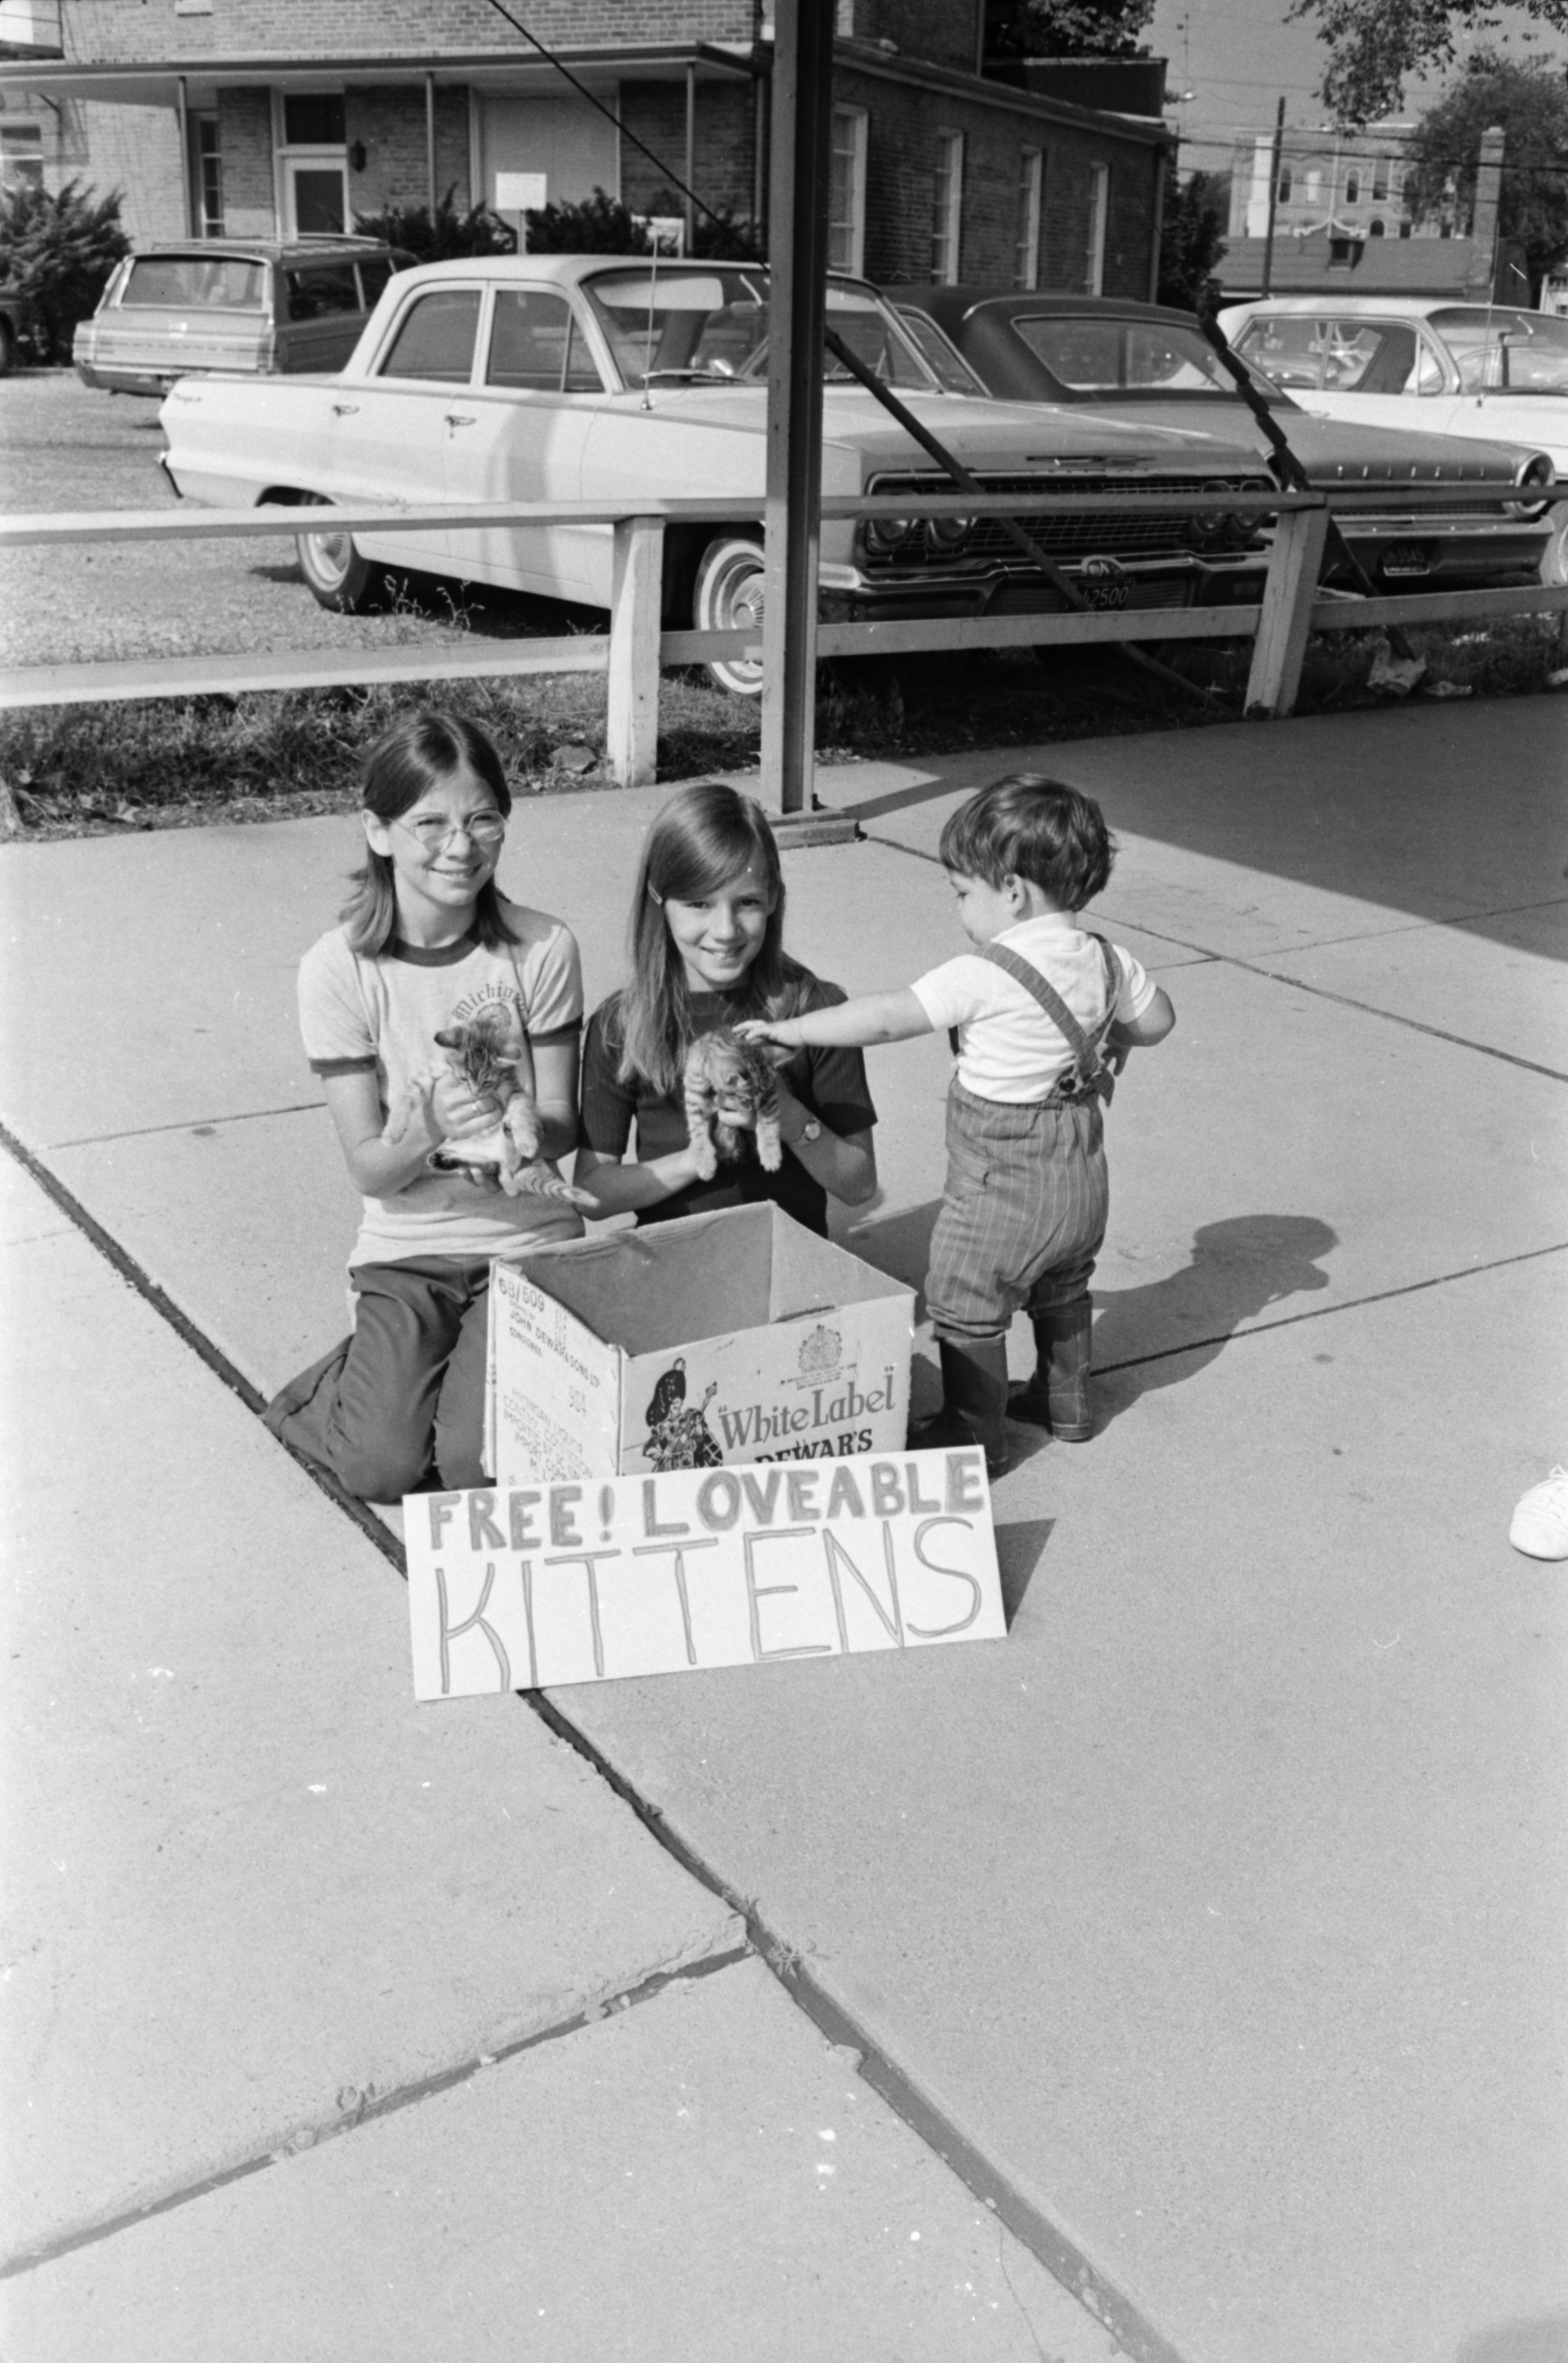 Mary and Barbara Fidler with free kittens at the Farmers Market, August 1969 image